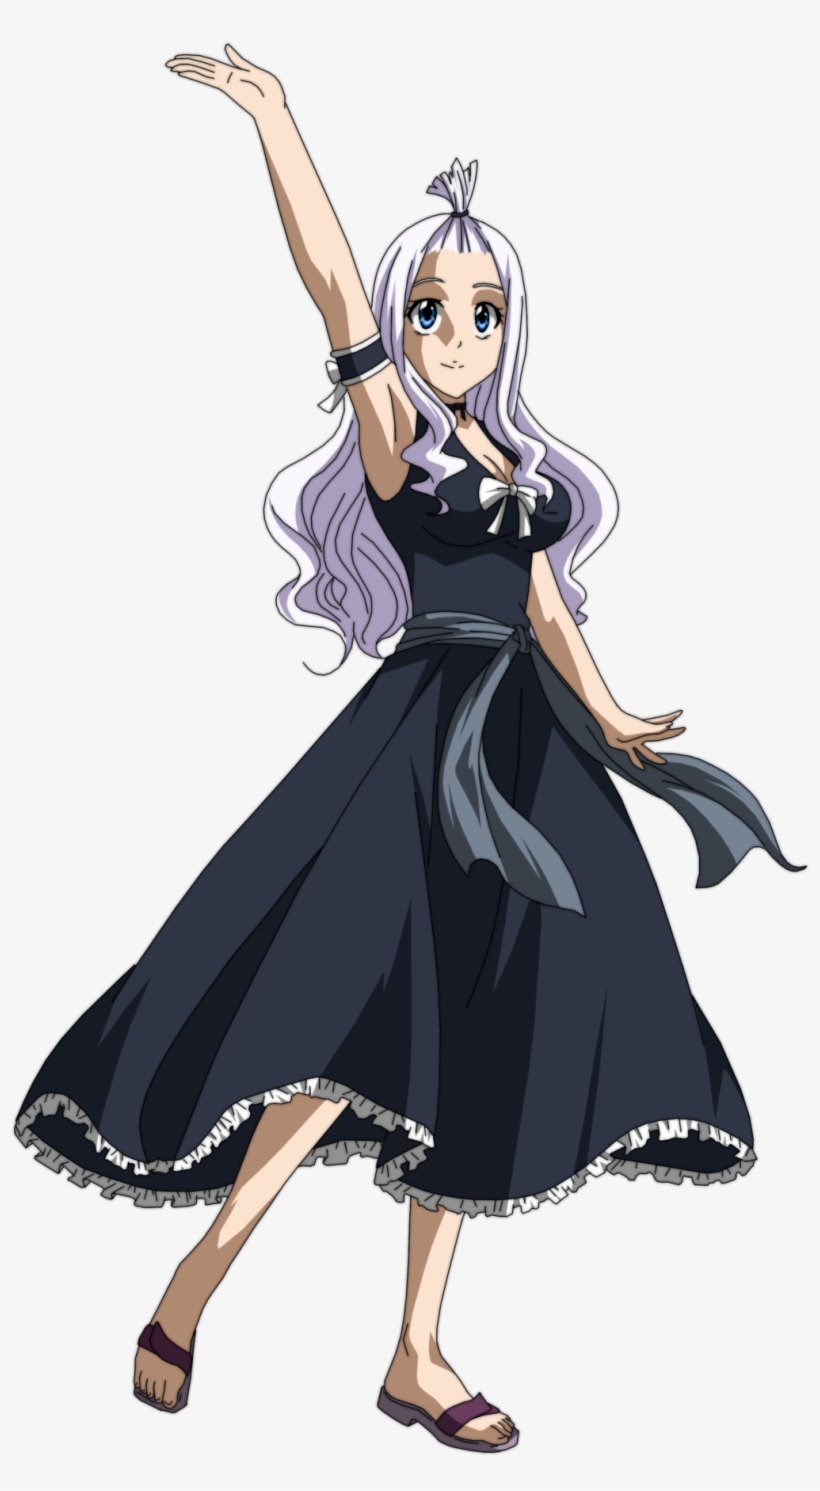 Fairy Tail To Share Fairies Deviantart Free Faeries Mirajane Strauss Png Png Image Transparent Png Free Download On Seekpng Discover images and videos about mirajane strauss from all over the world on we heart it. mirajane strauss png png image